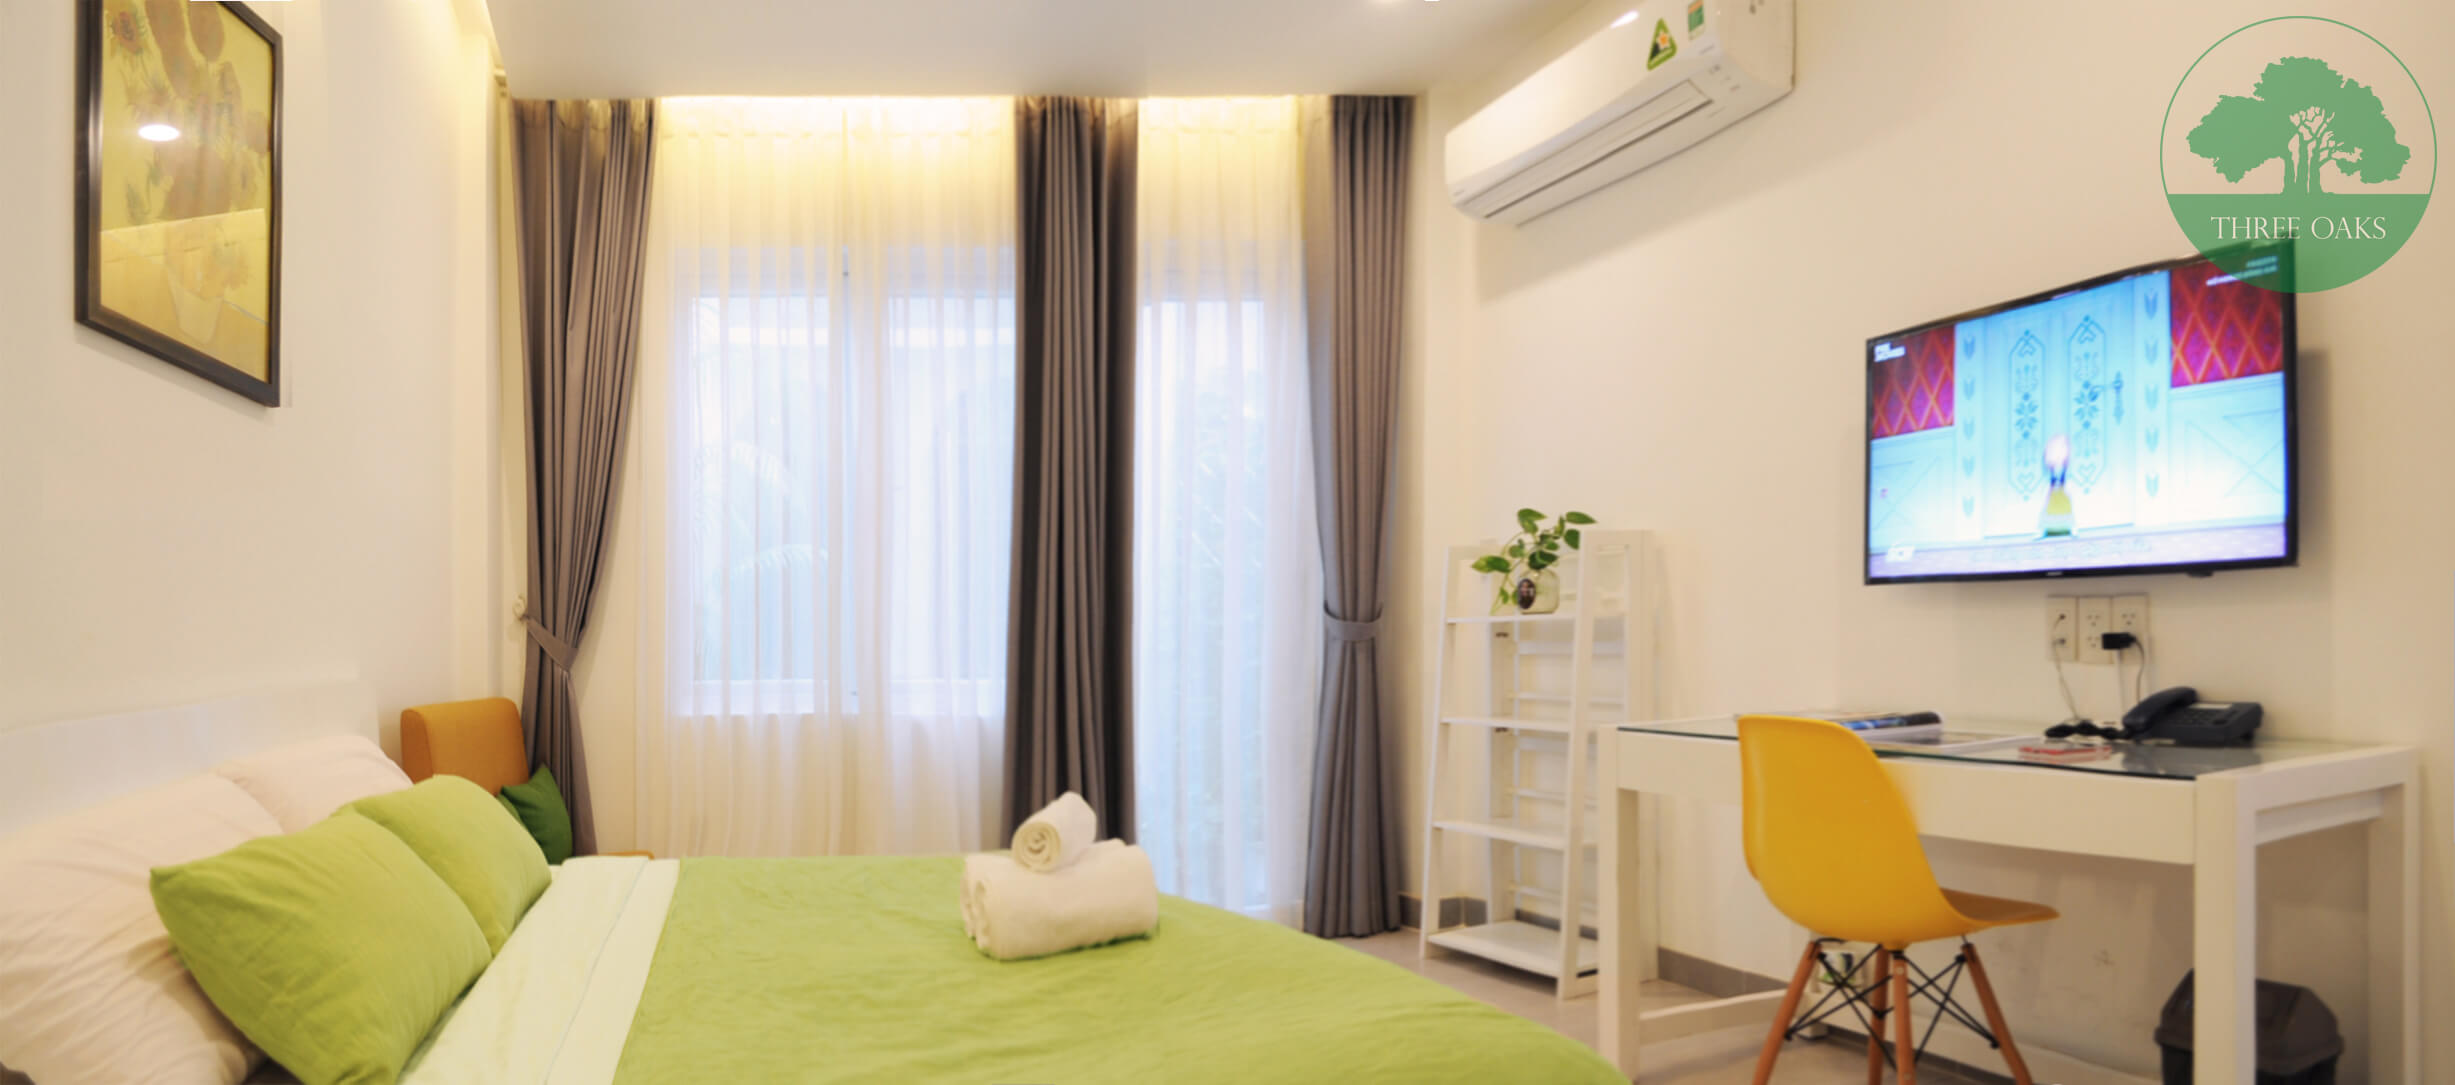 serviced-aparment-room-for-rent-saigon-One-bedroom-with-Small-backyard-12